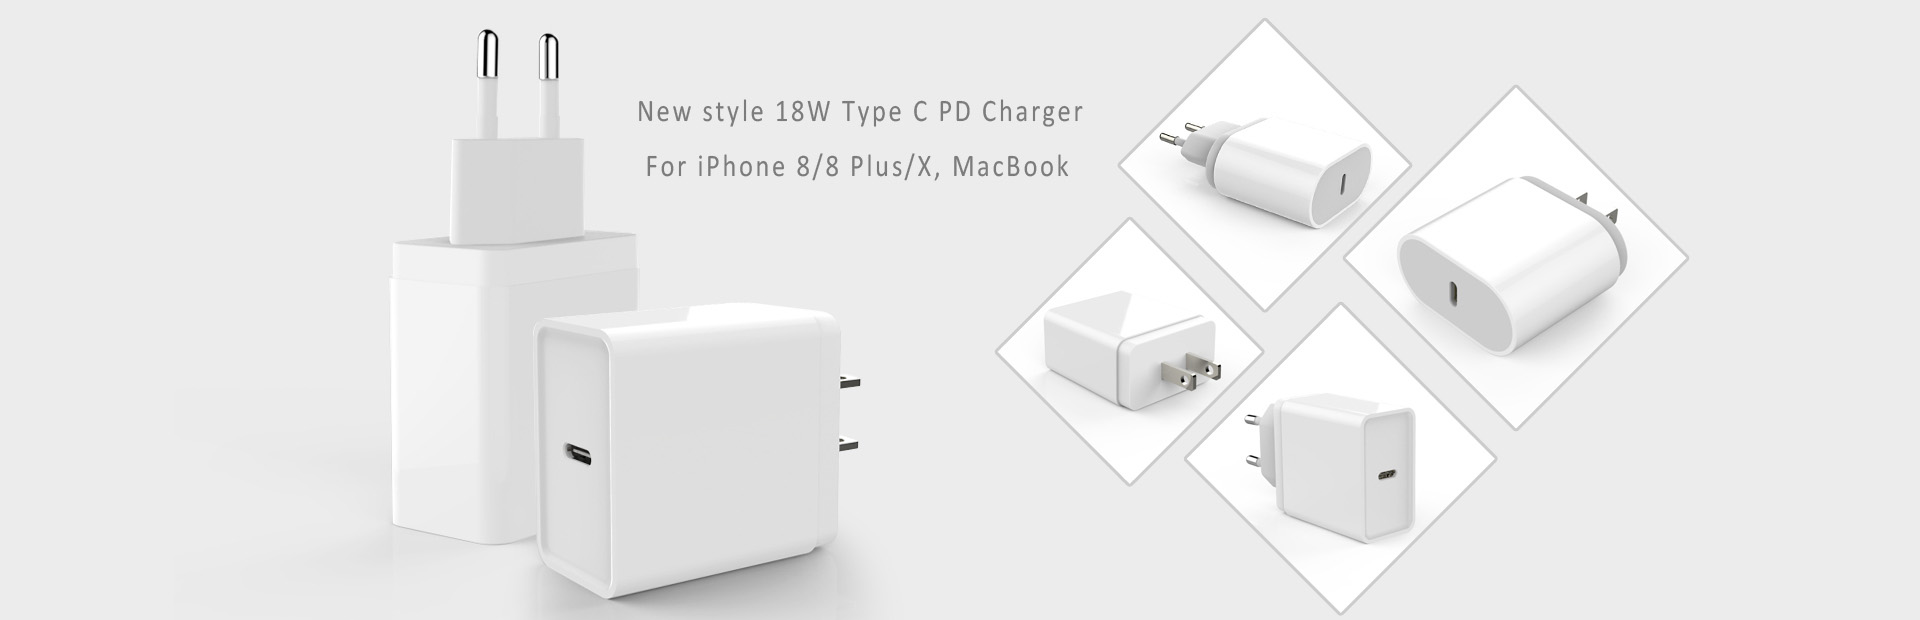 Type-C PD 18W Charger,for iphone 8/8 plus/X,MacBook